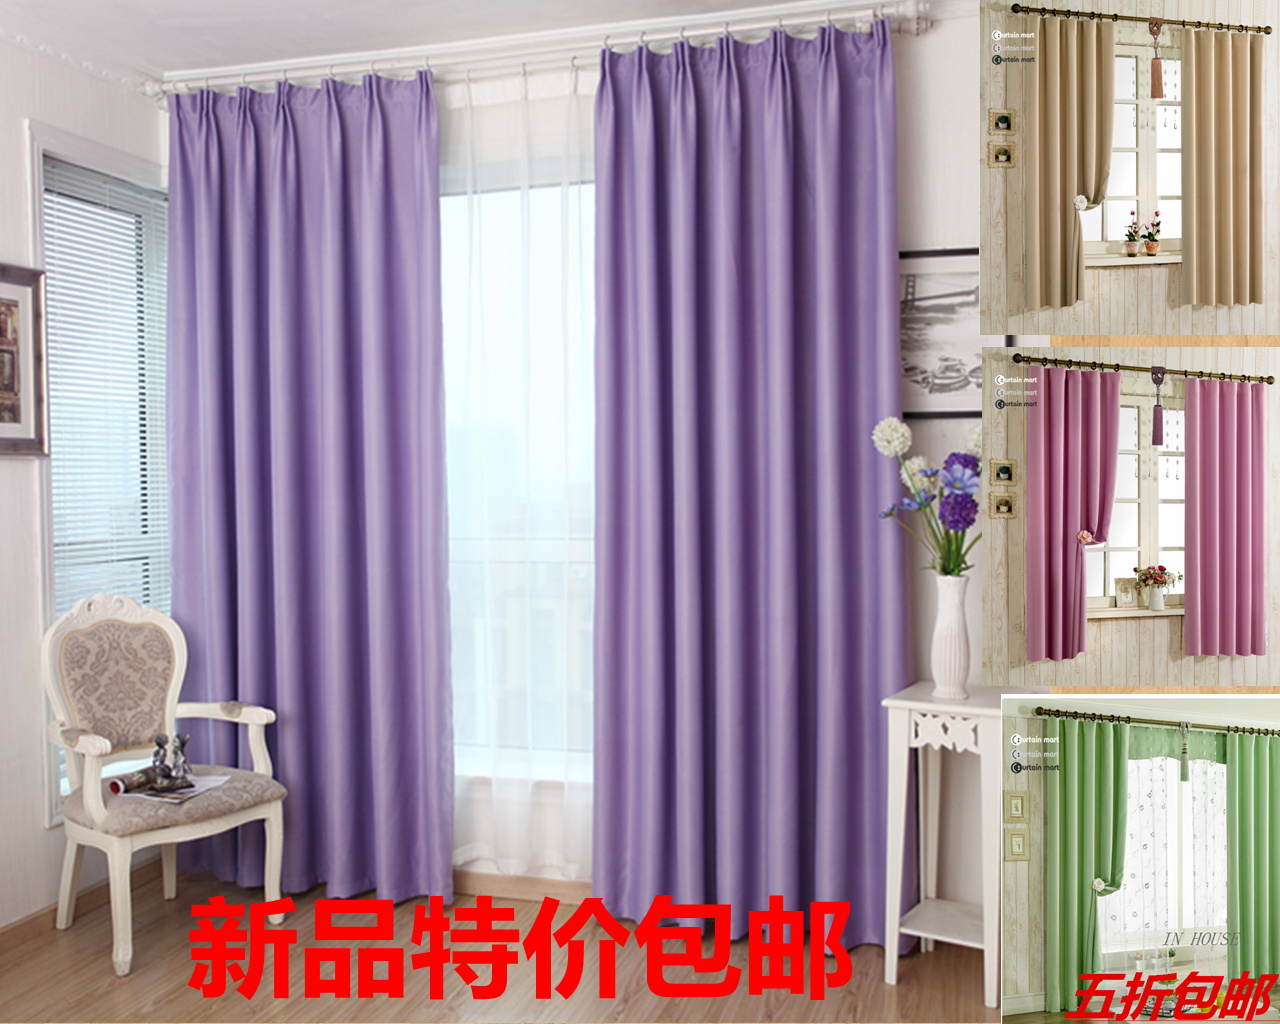 18+ Largest Catalog Of Lilac Purple Curtains And Drapes